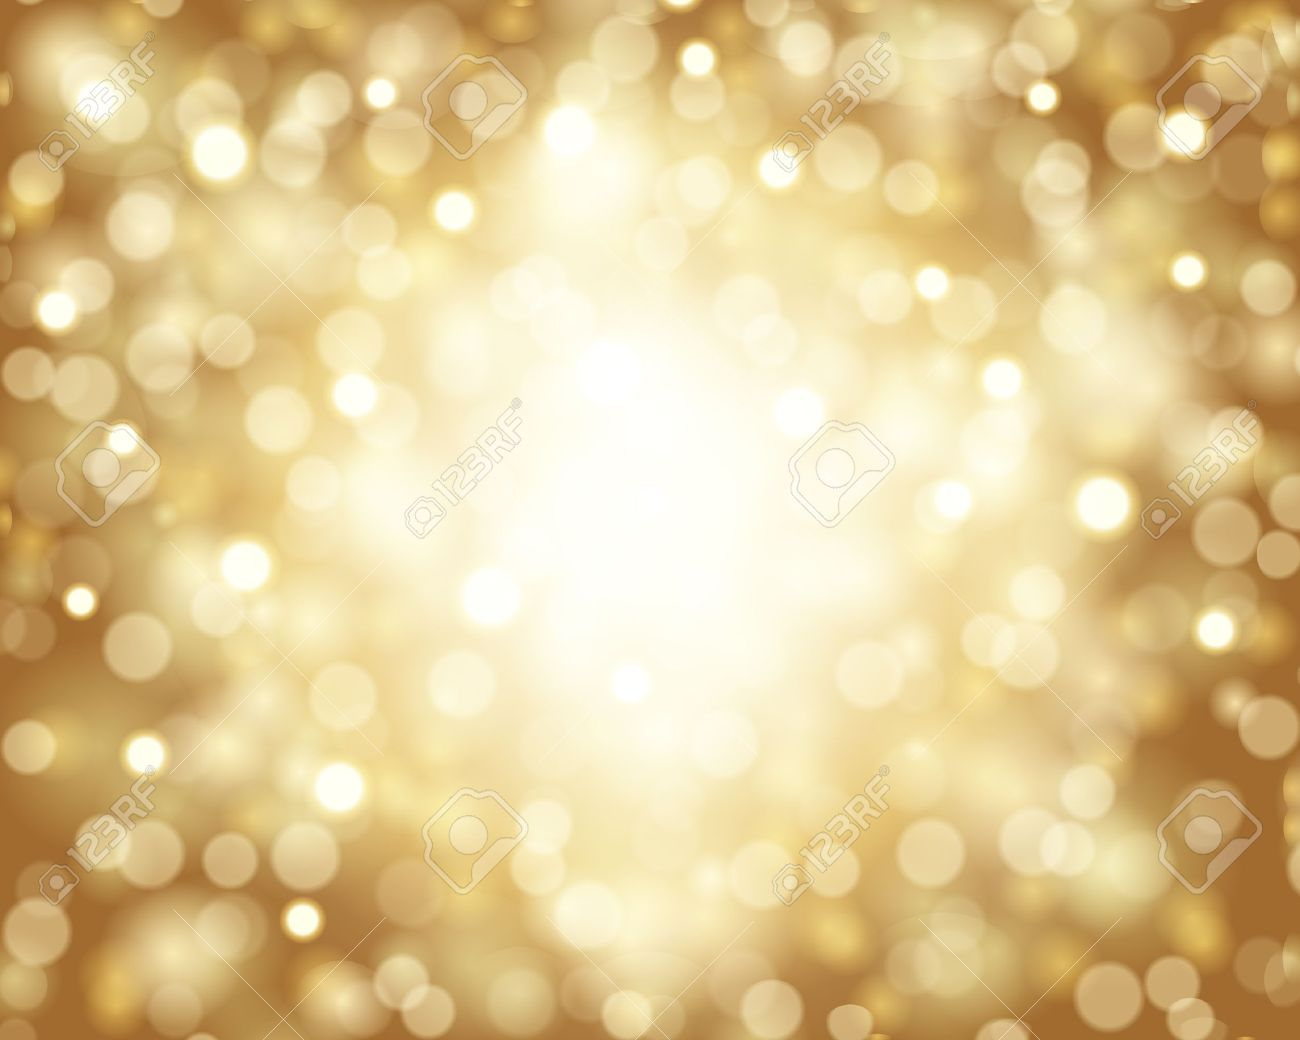 Gold Sparkles Clipart Gold Sparkle Bokeh Card